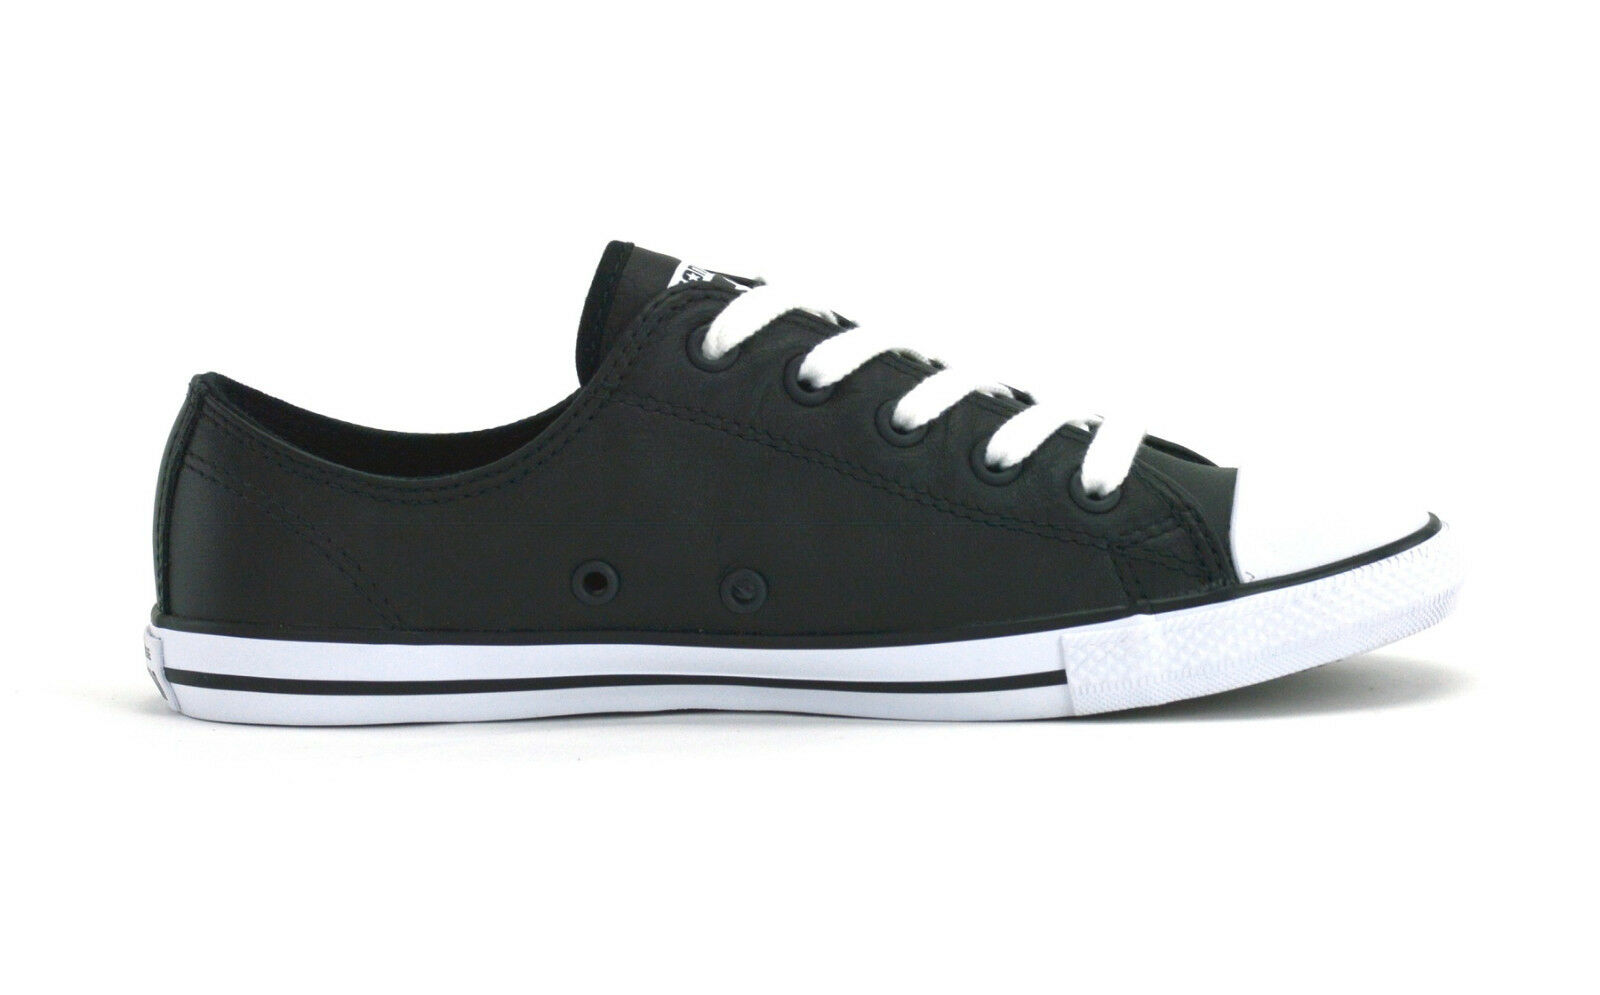 b6bffb7ce0f3 Converse Chuck Taylor All Star Dainty Black Leather Trainers 7 UK ...